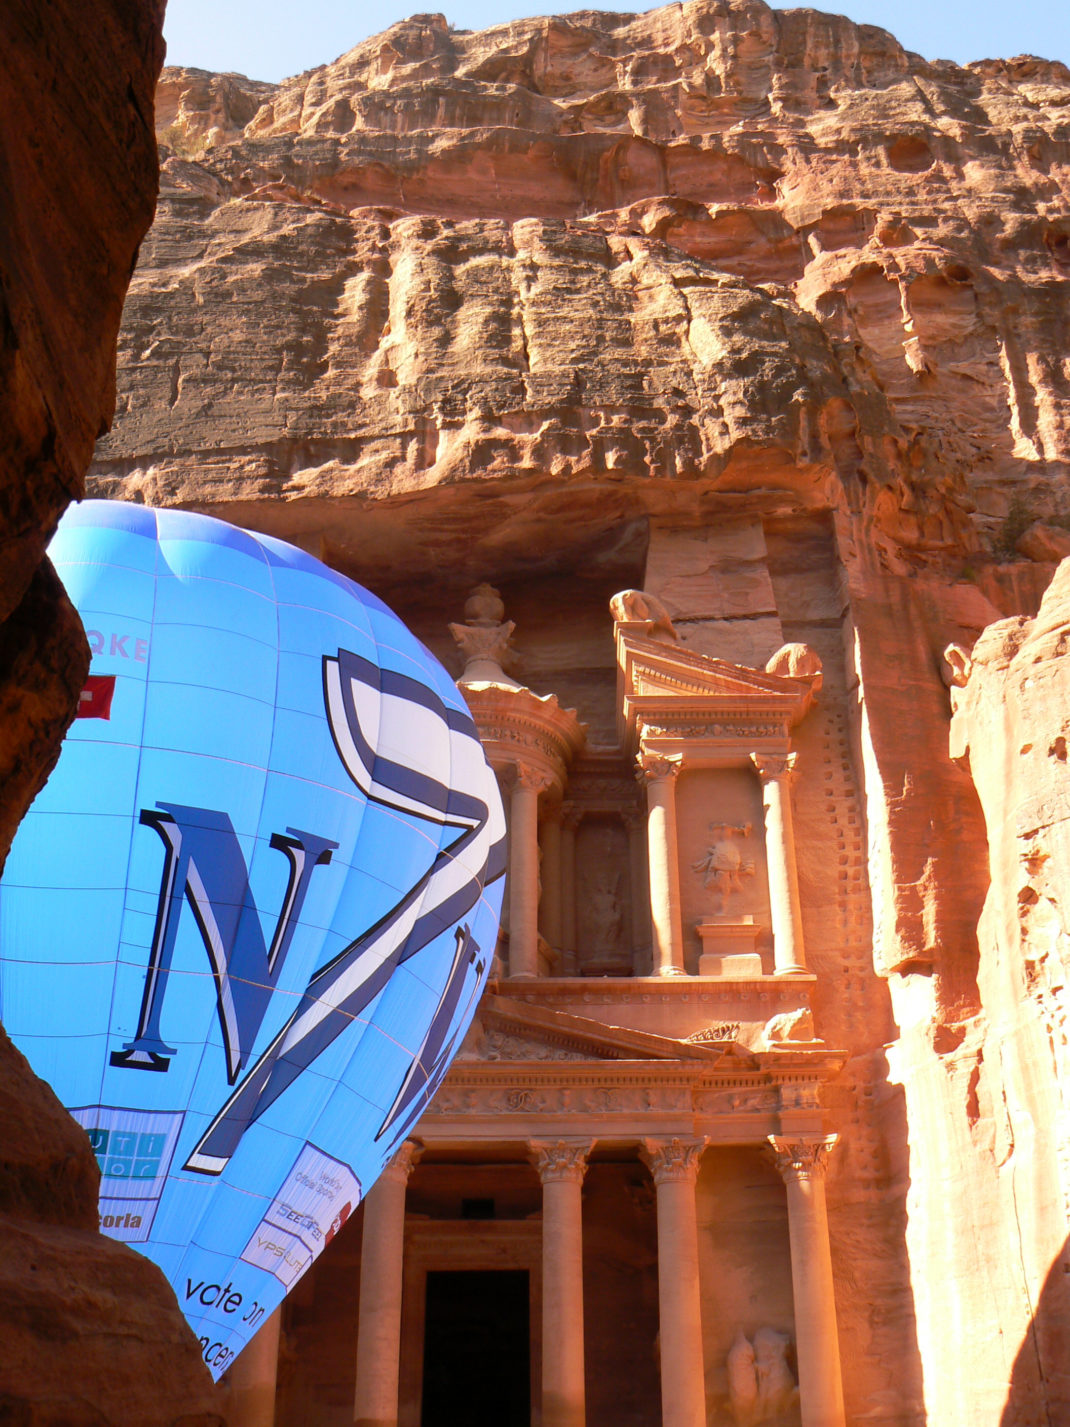 Petra New7wonders Of The World